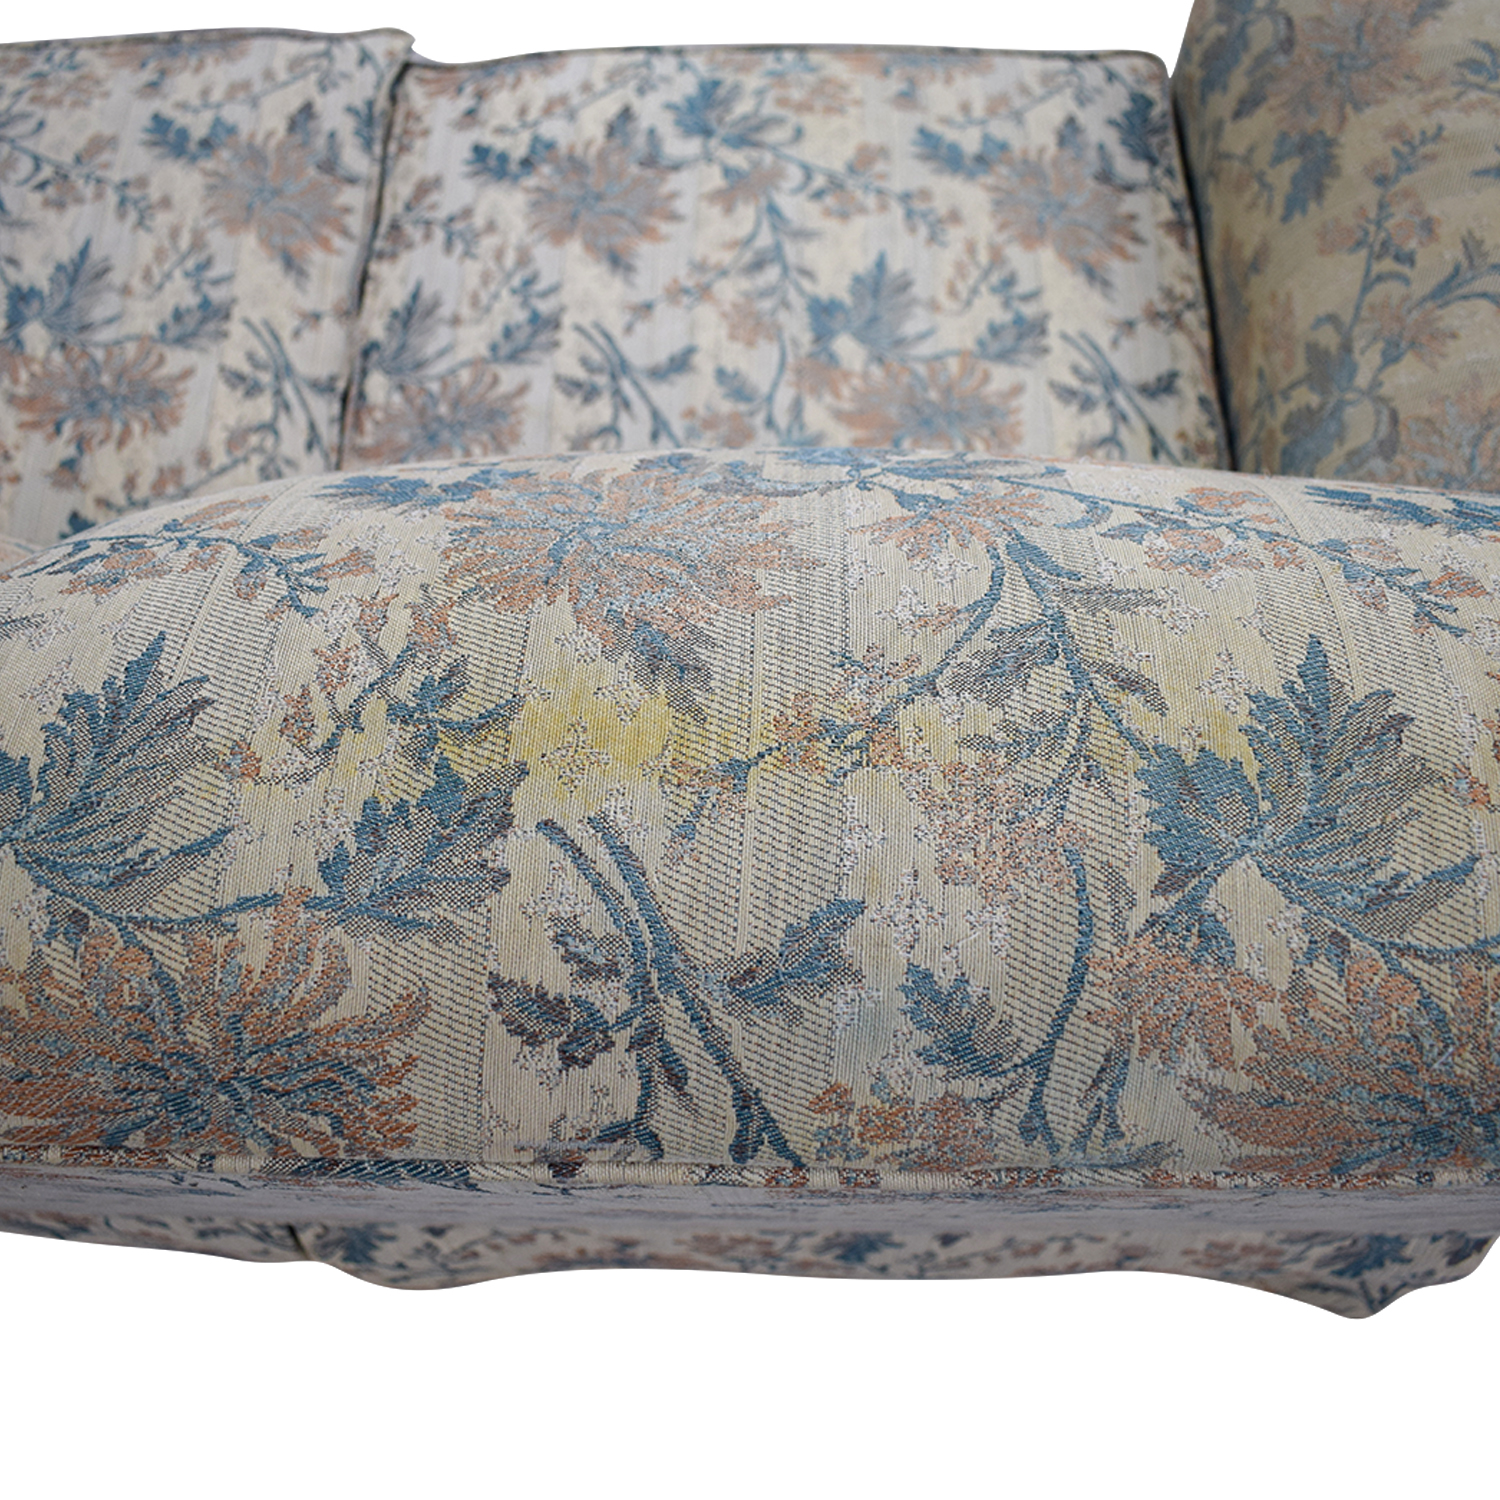 Stupendous 90 Off Broyhill Furniture Broyhill Upholstery Furniture Yellow Flower Fabric Loveseat Sofas Forskolin Free Trial Chair Design Images Forskolin Free Trialorg